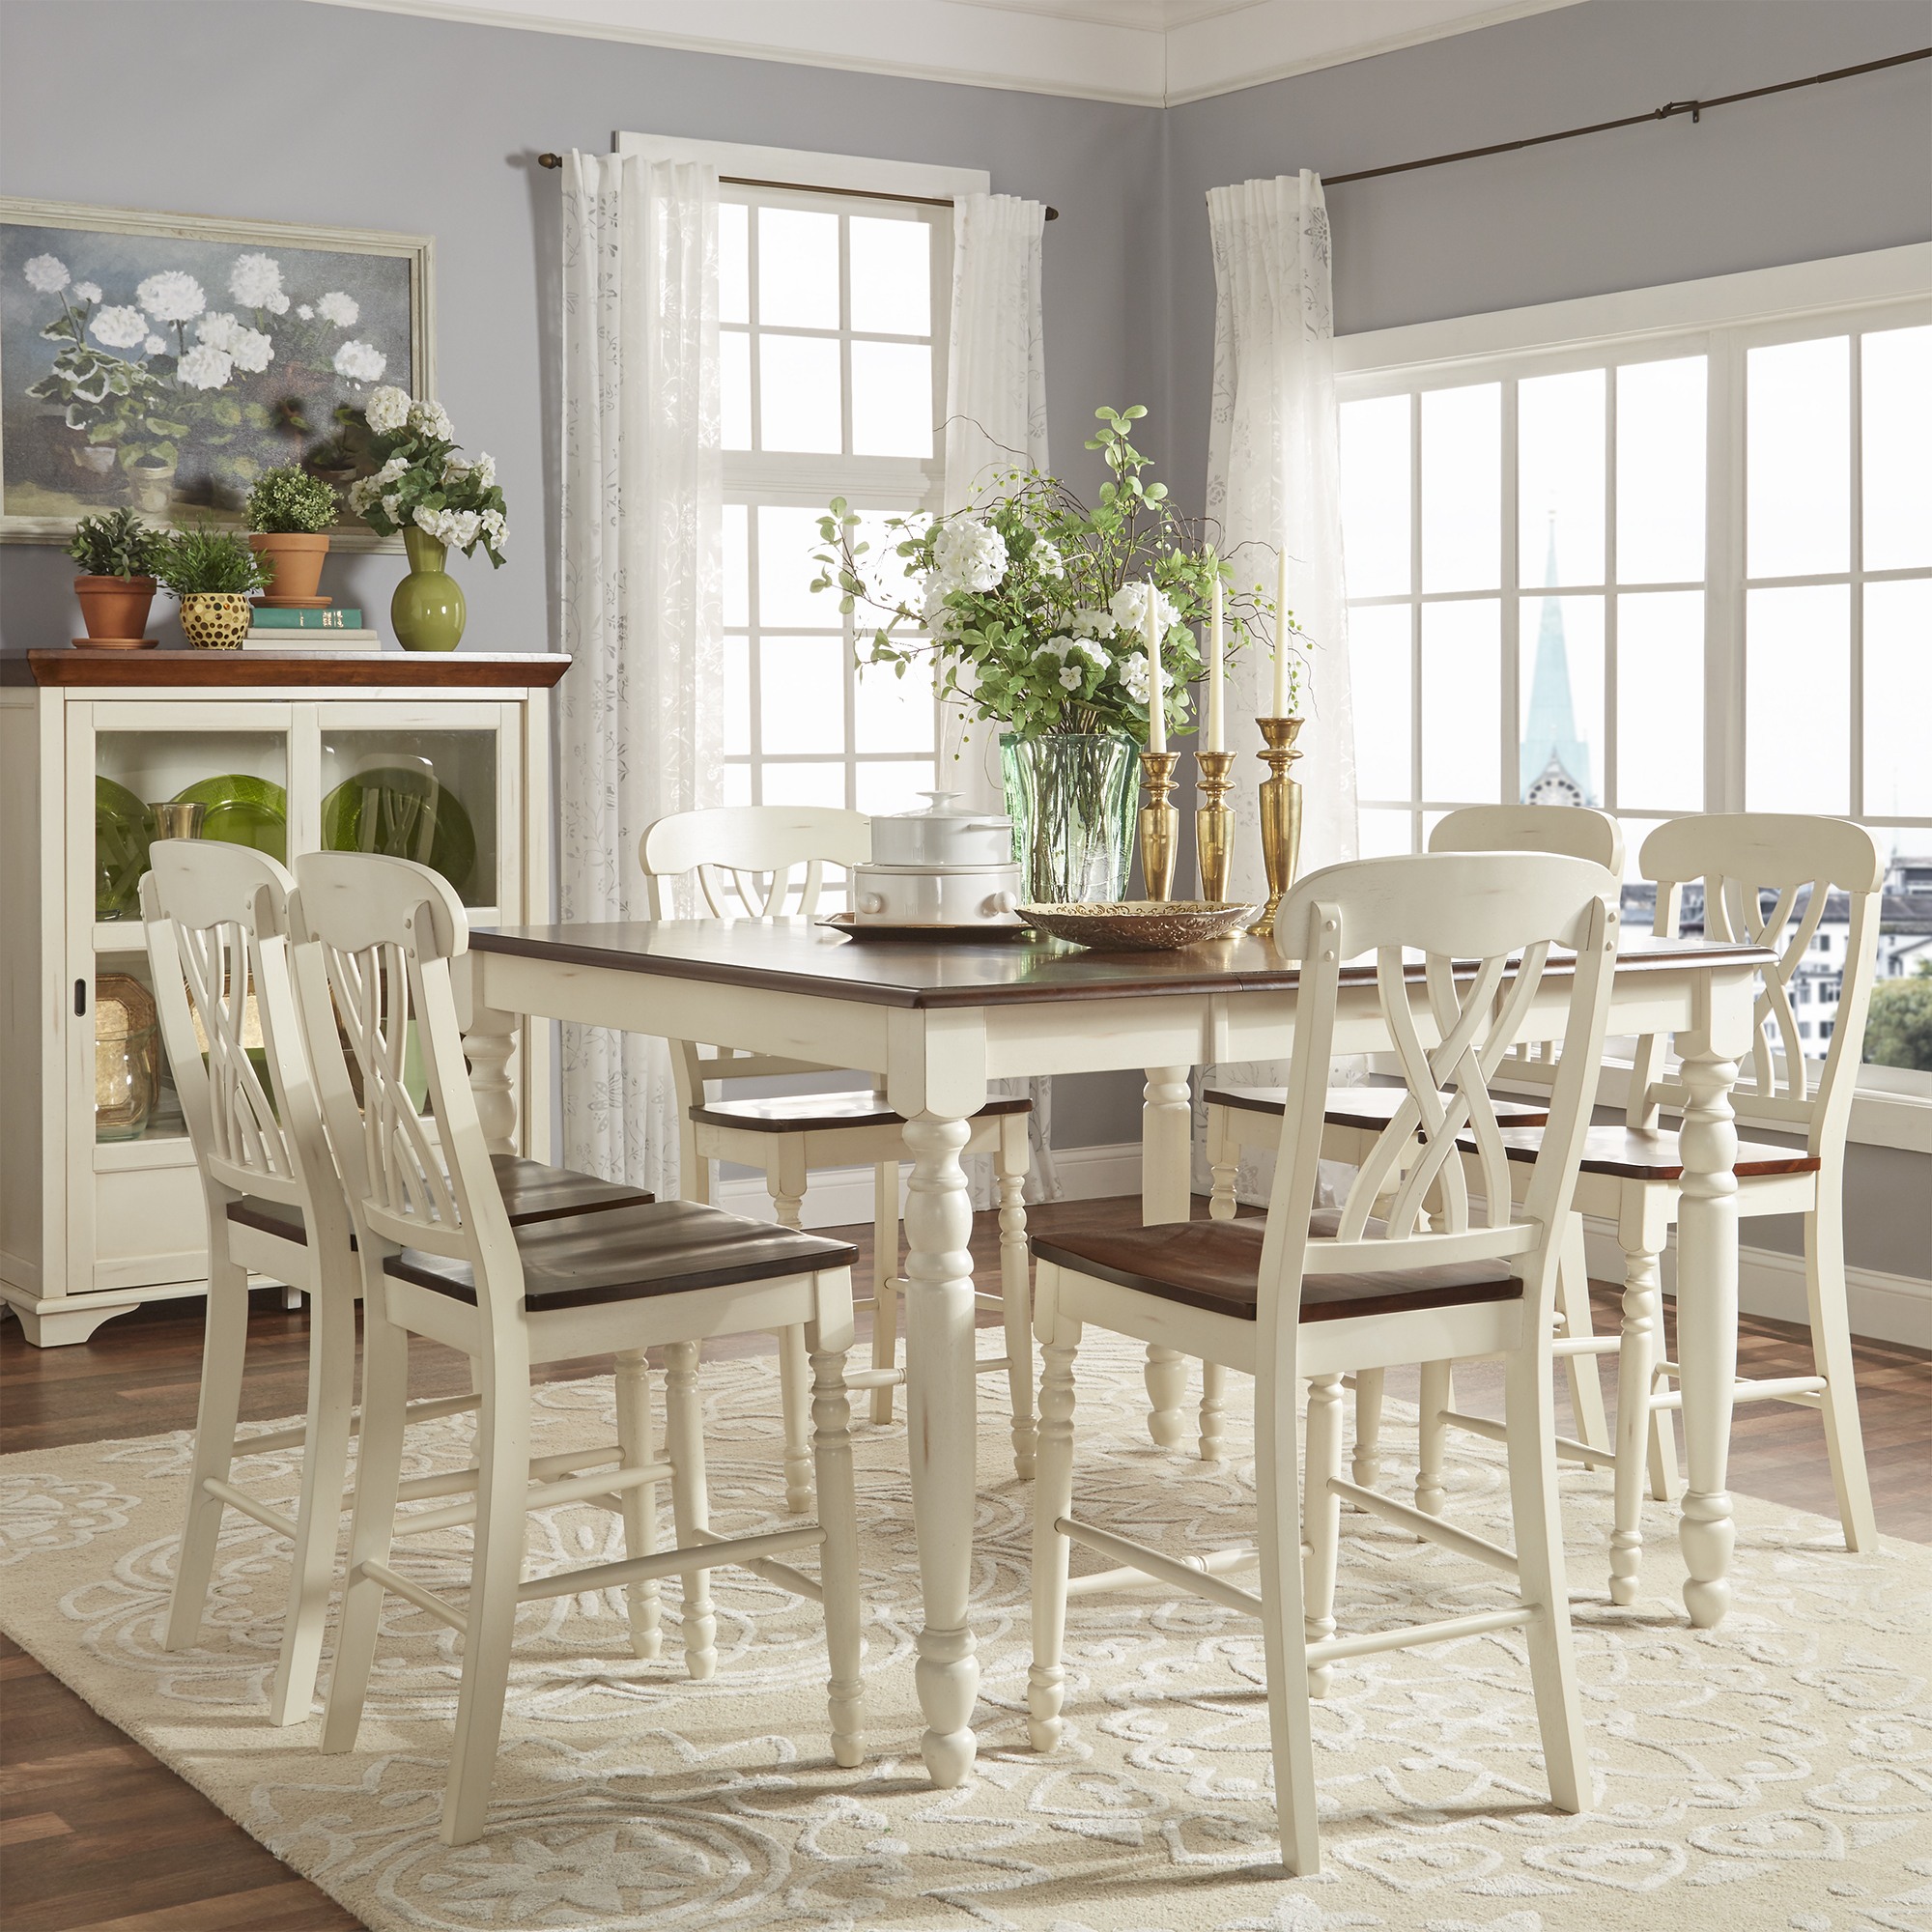 Weston Home Two Tone 7 Piece Counter Height Dining Set Antique White